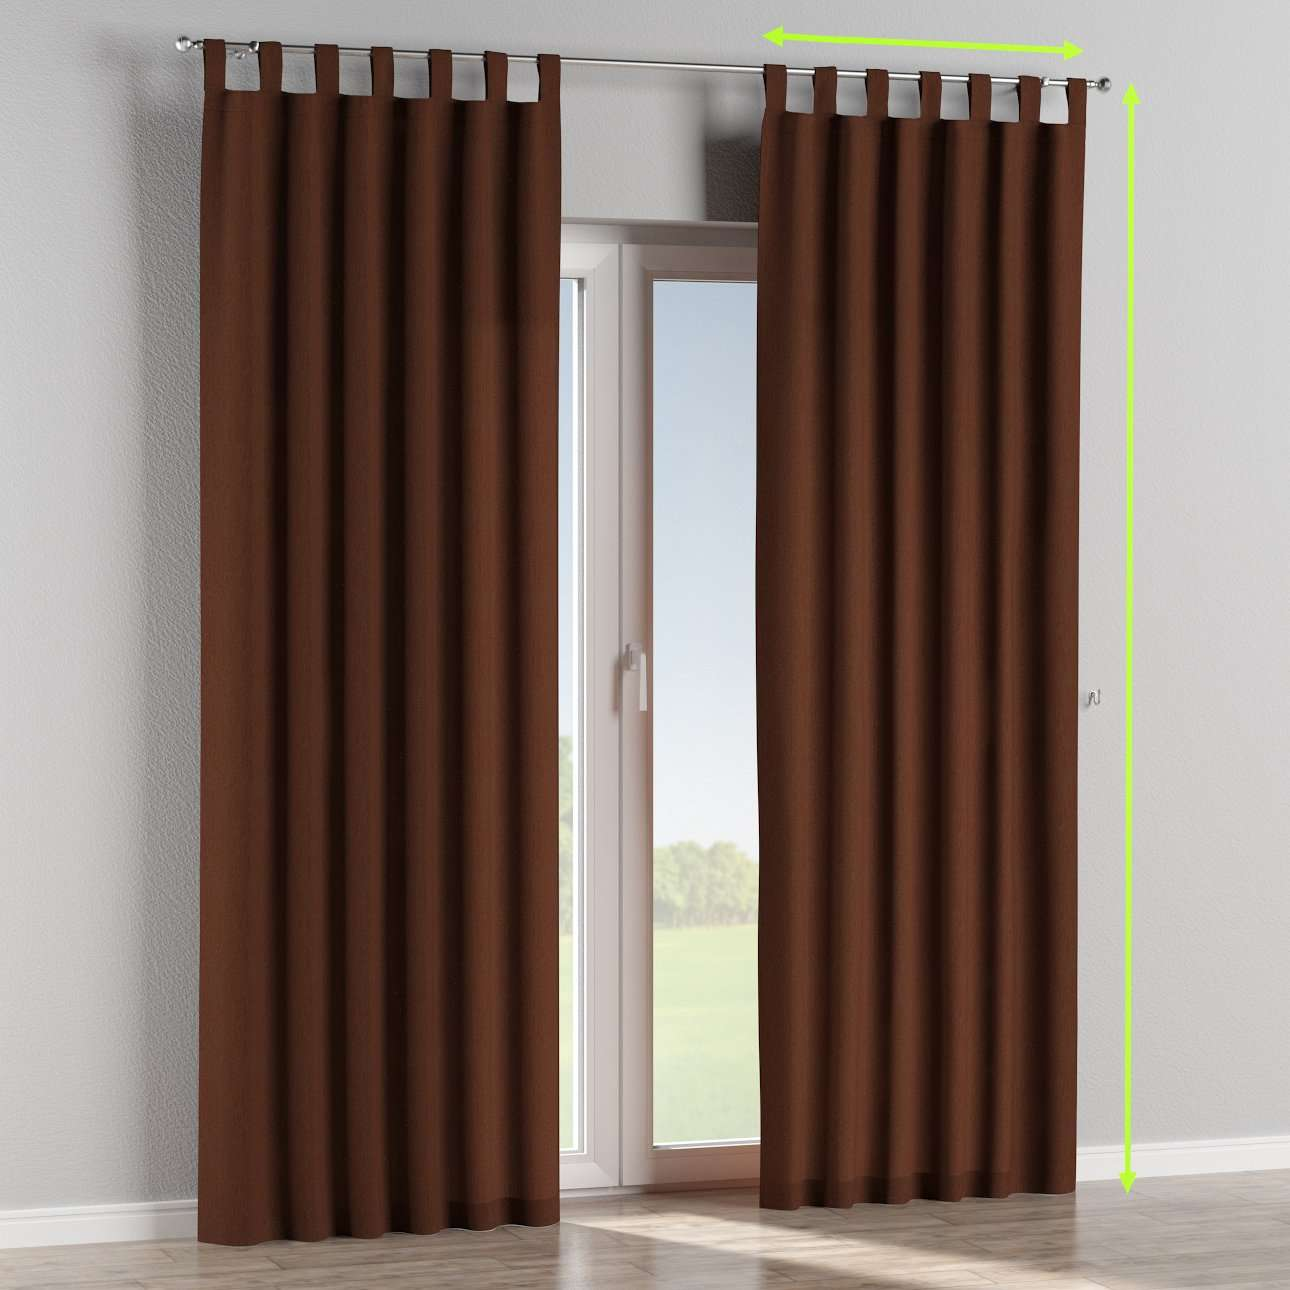 Tab top curtains in collection Chenille, fabric: 702-18